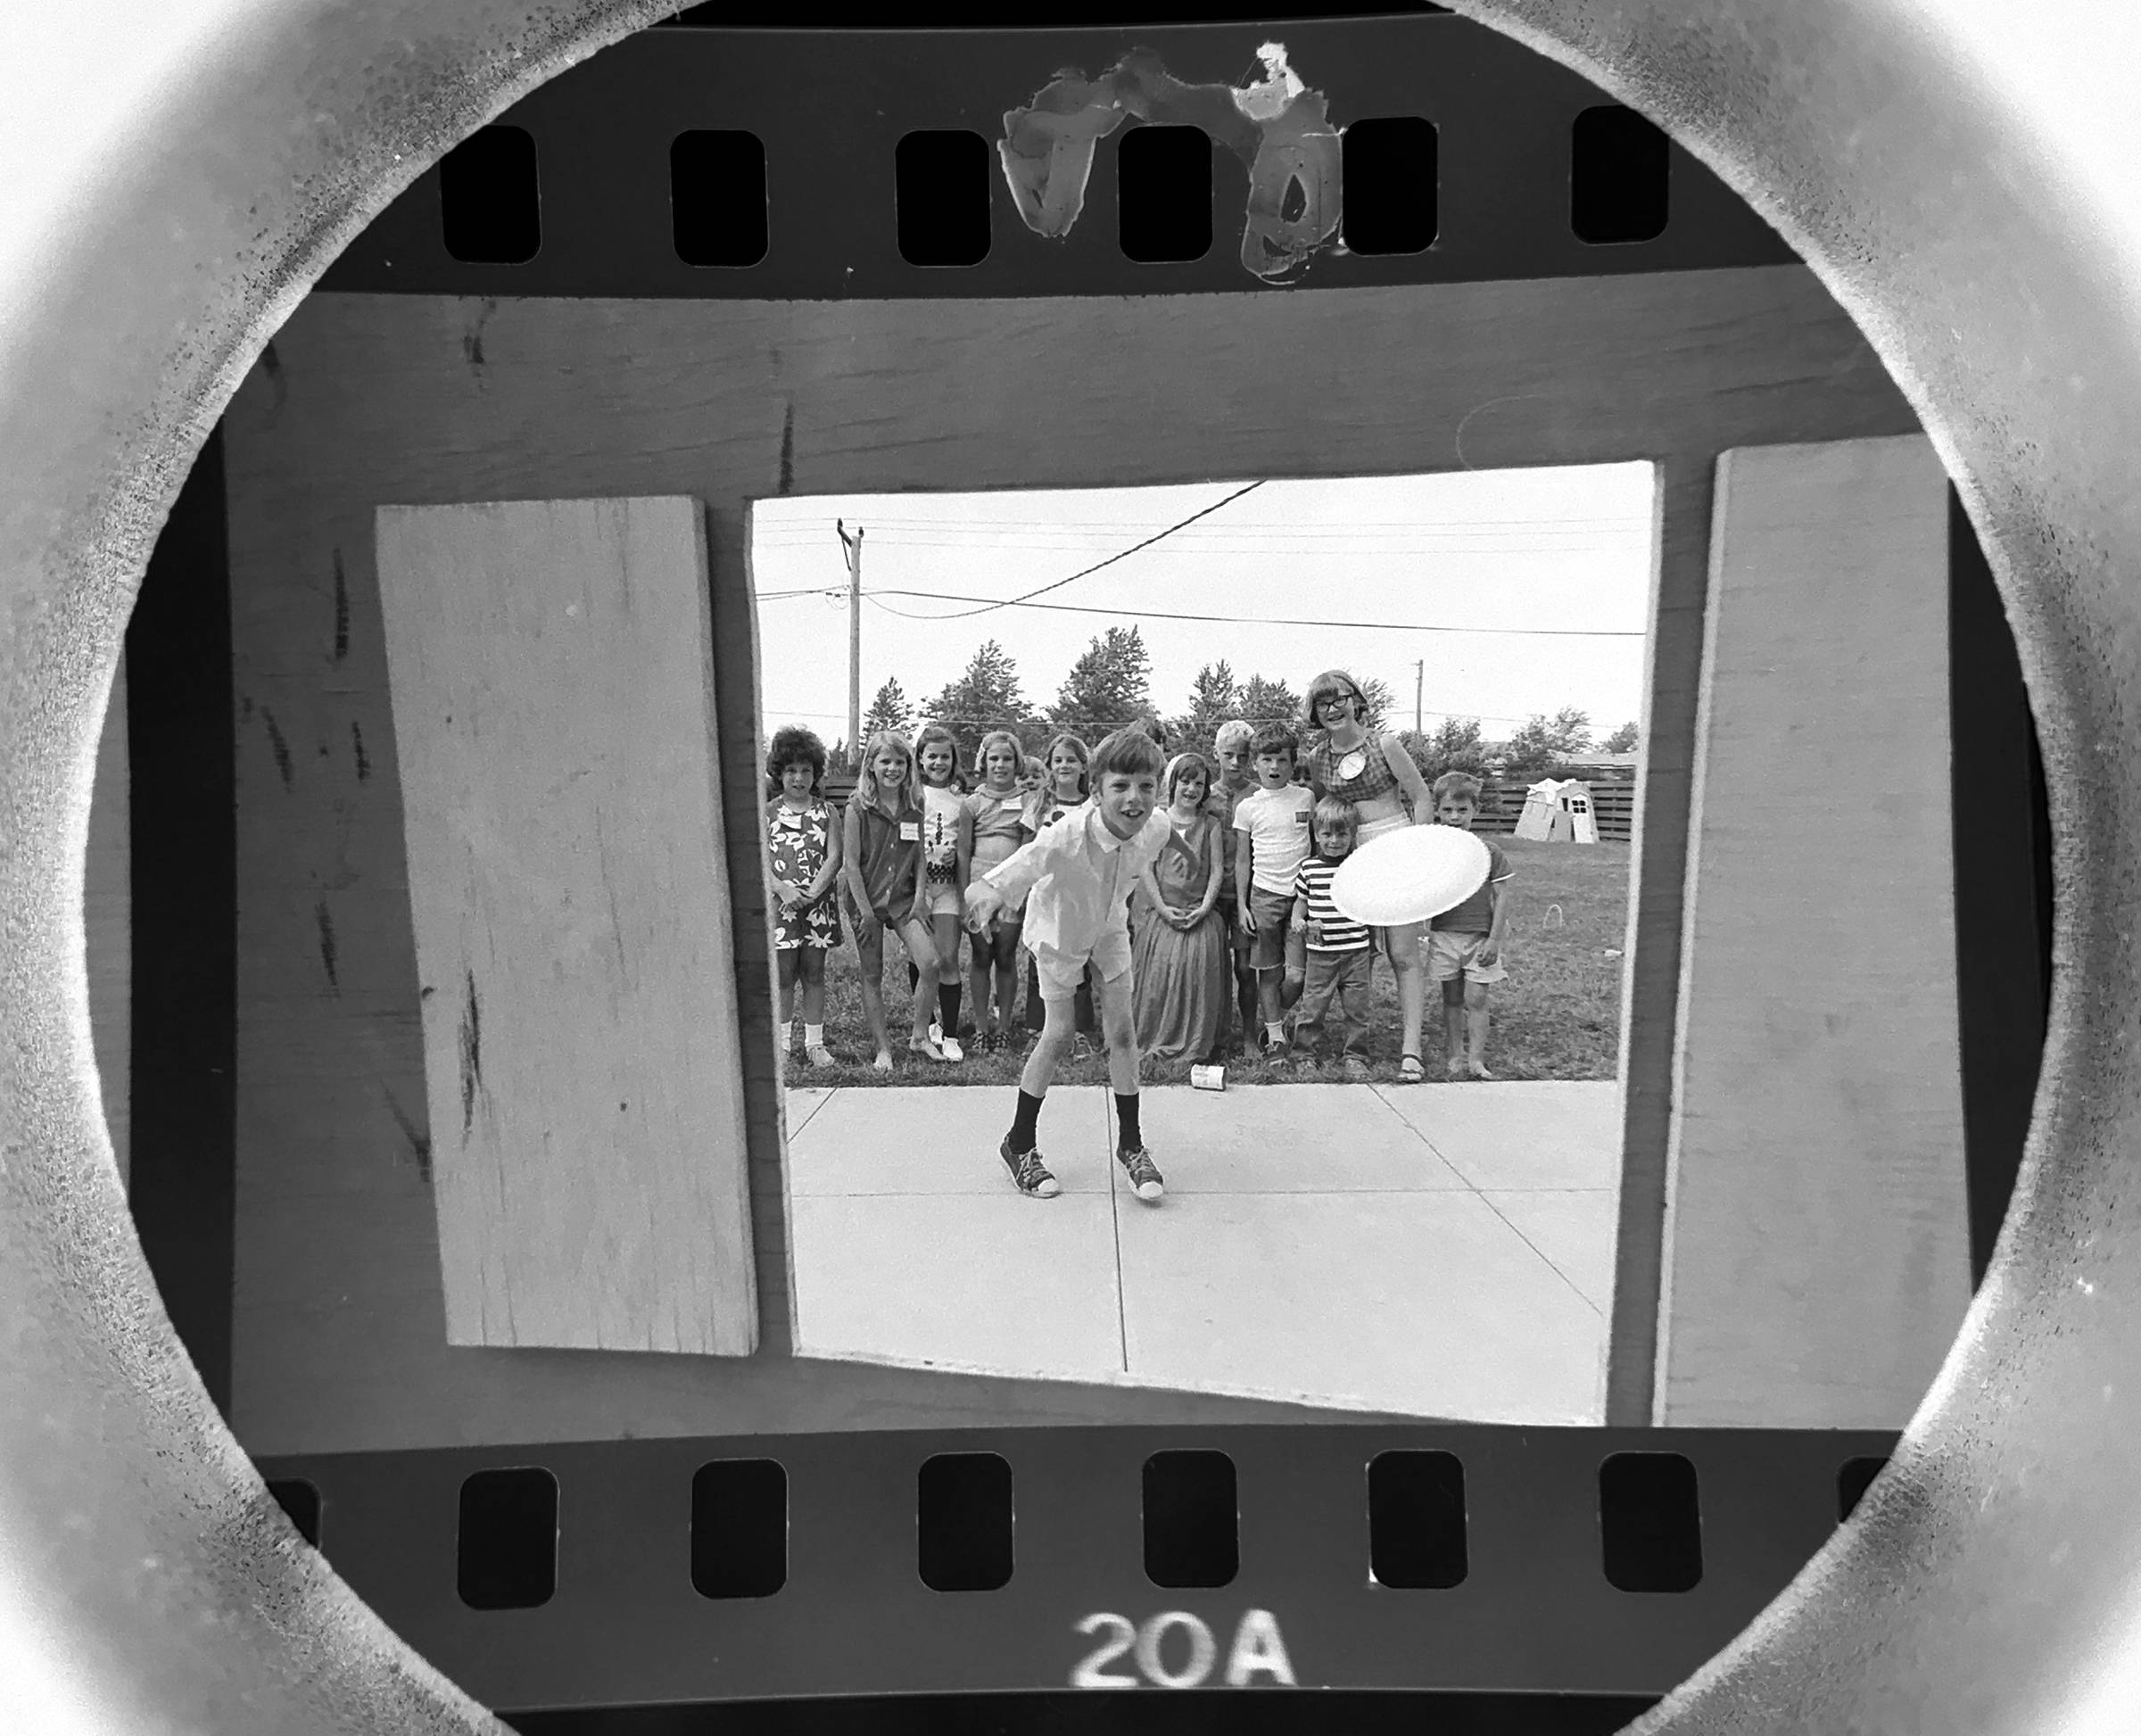 The Daily Herald Archives, Assignment 21,951, Jay Needleman photo: Ross Siragusa tosses a pie a during the pie toss at a neighborhood carnival in Des Plaines to help fight muscular dystrophy. The carnival raised $7.38 which was donated to the Muscular Dystrophy Association of America in June of 1971.